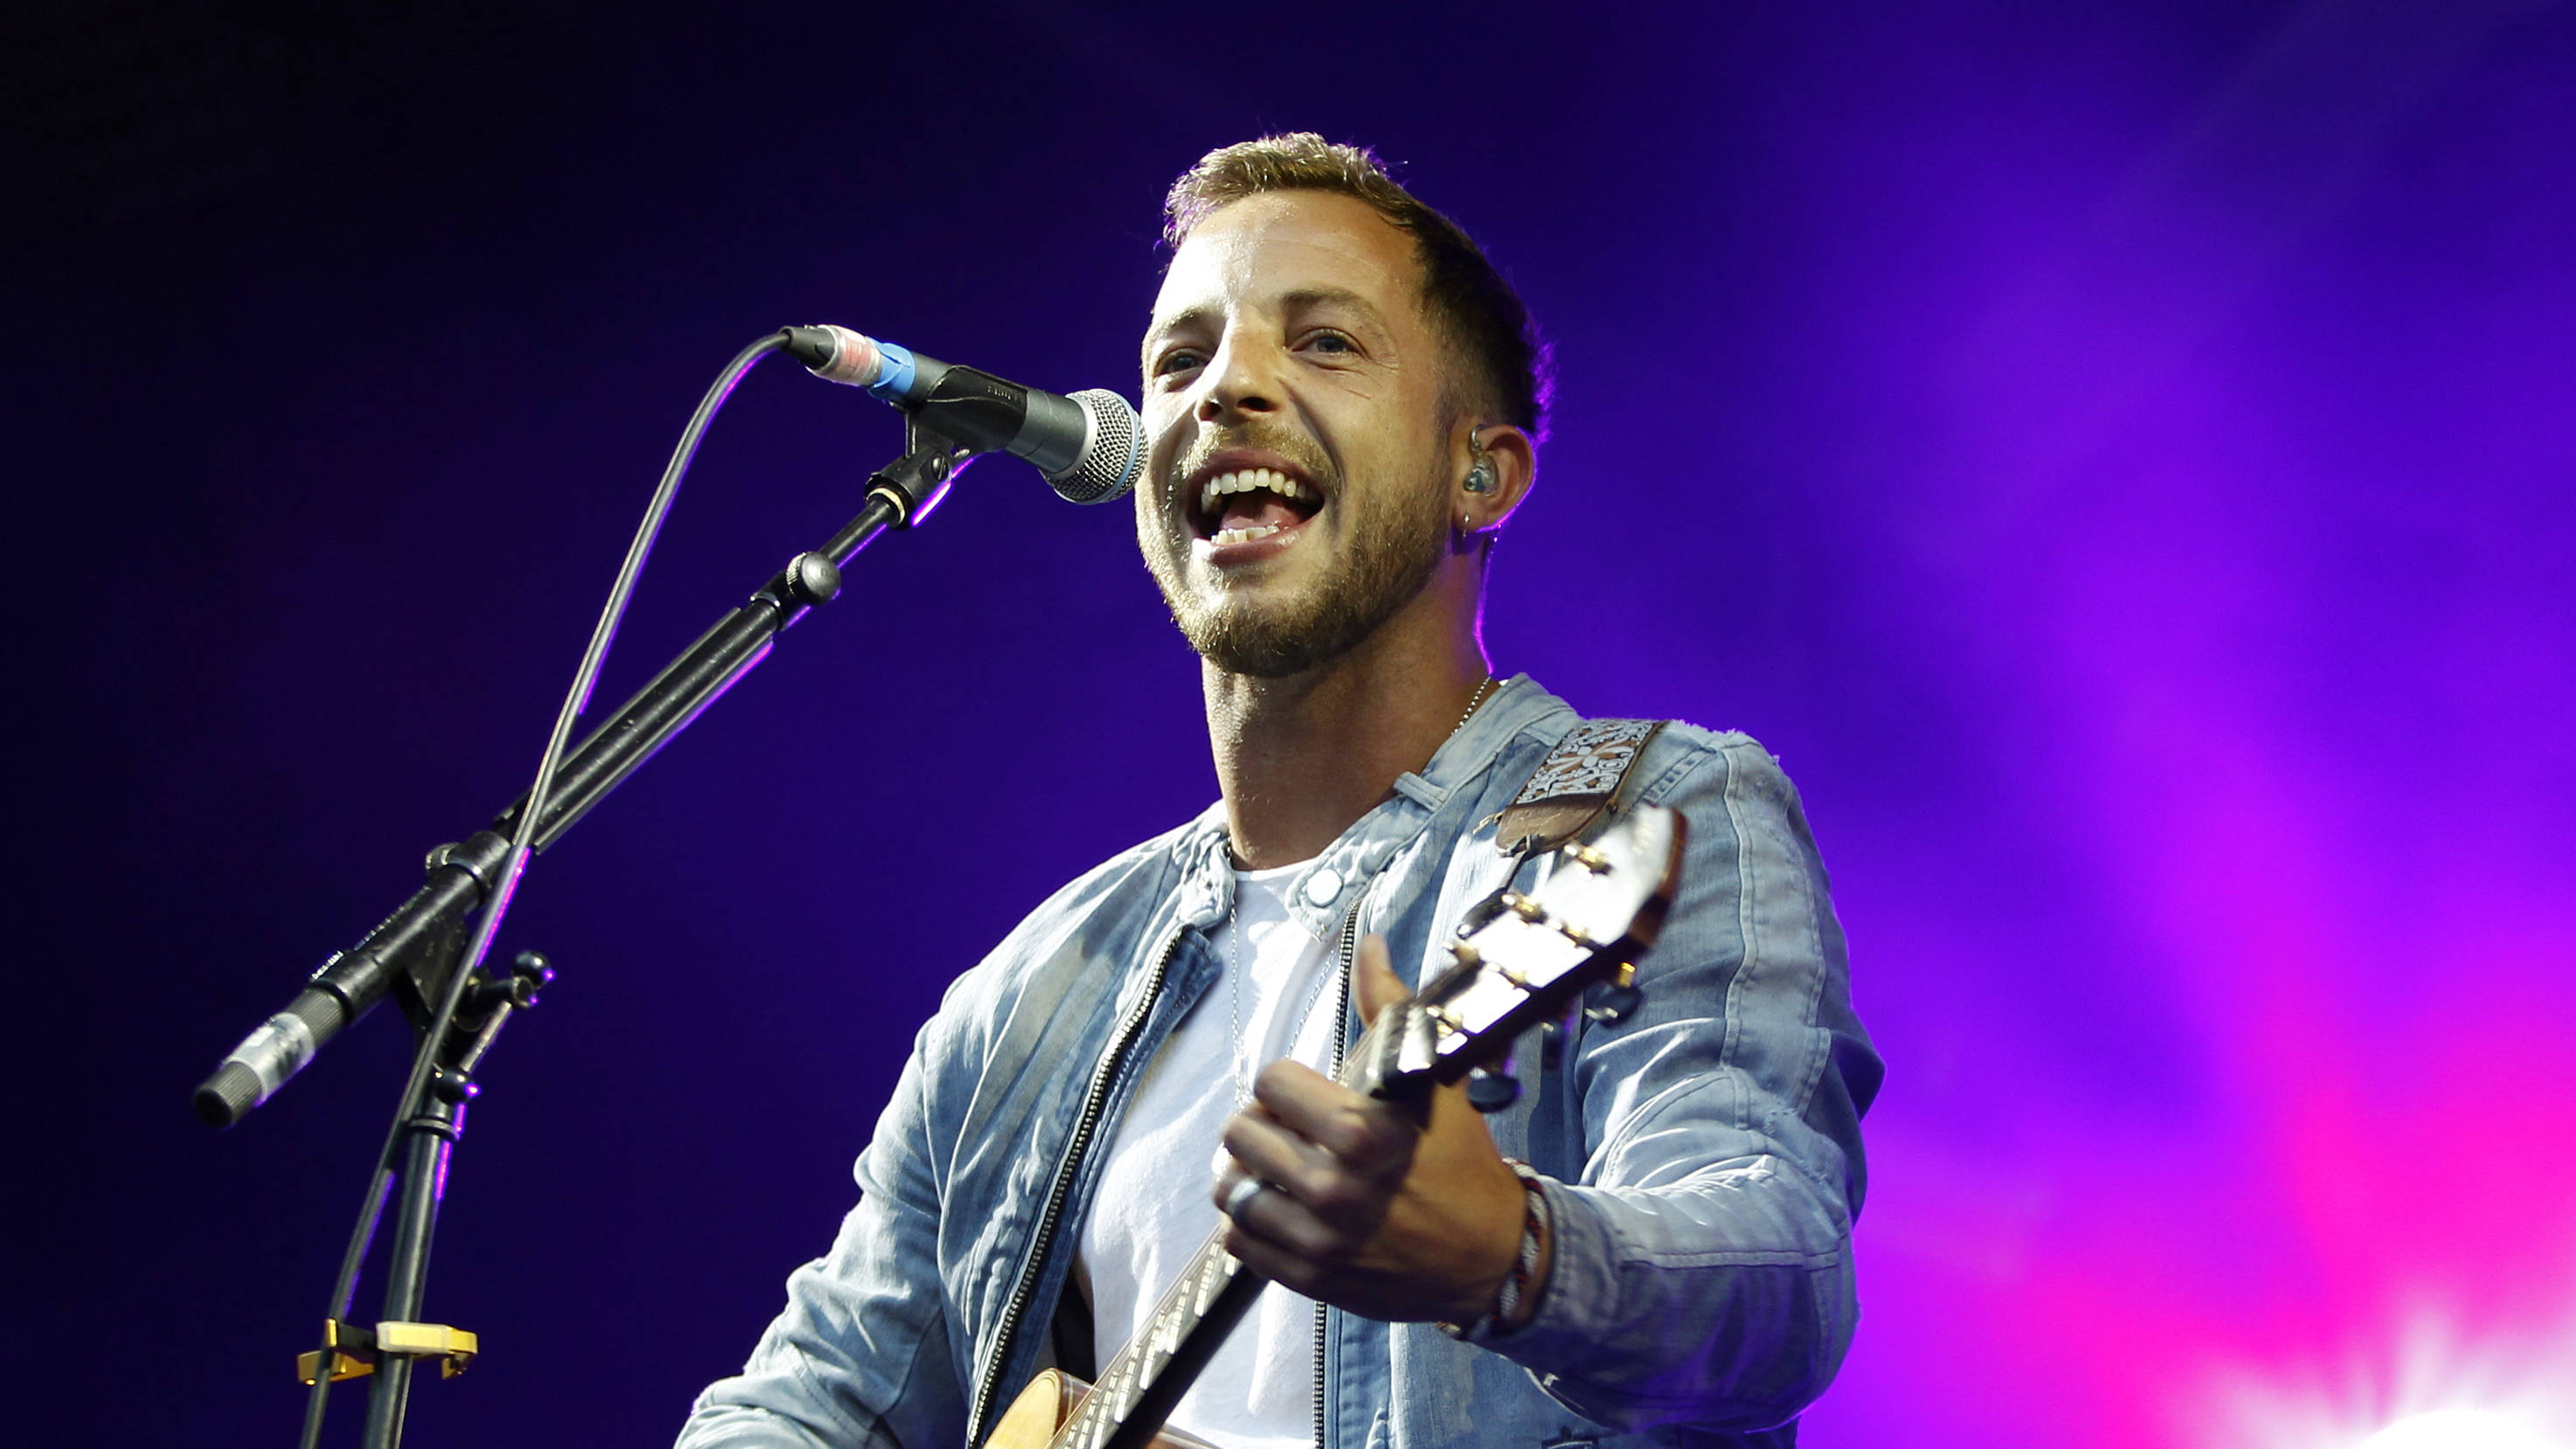 James Morrison facts: Who is his wife, what are his biggest songs